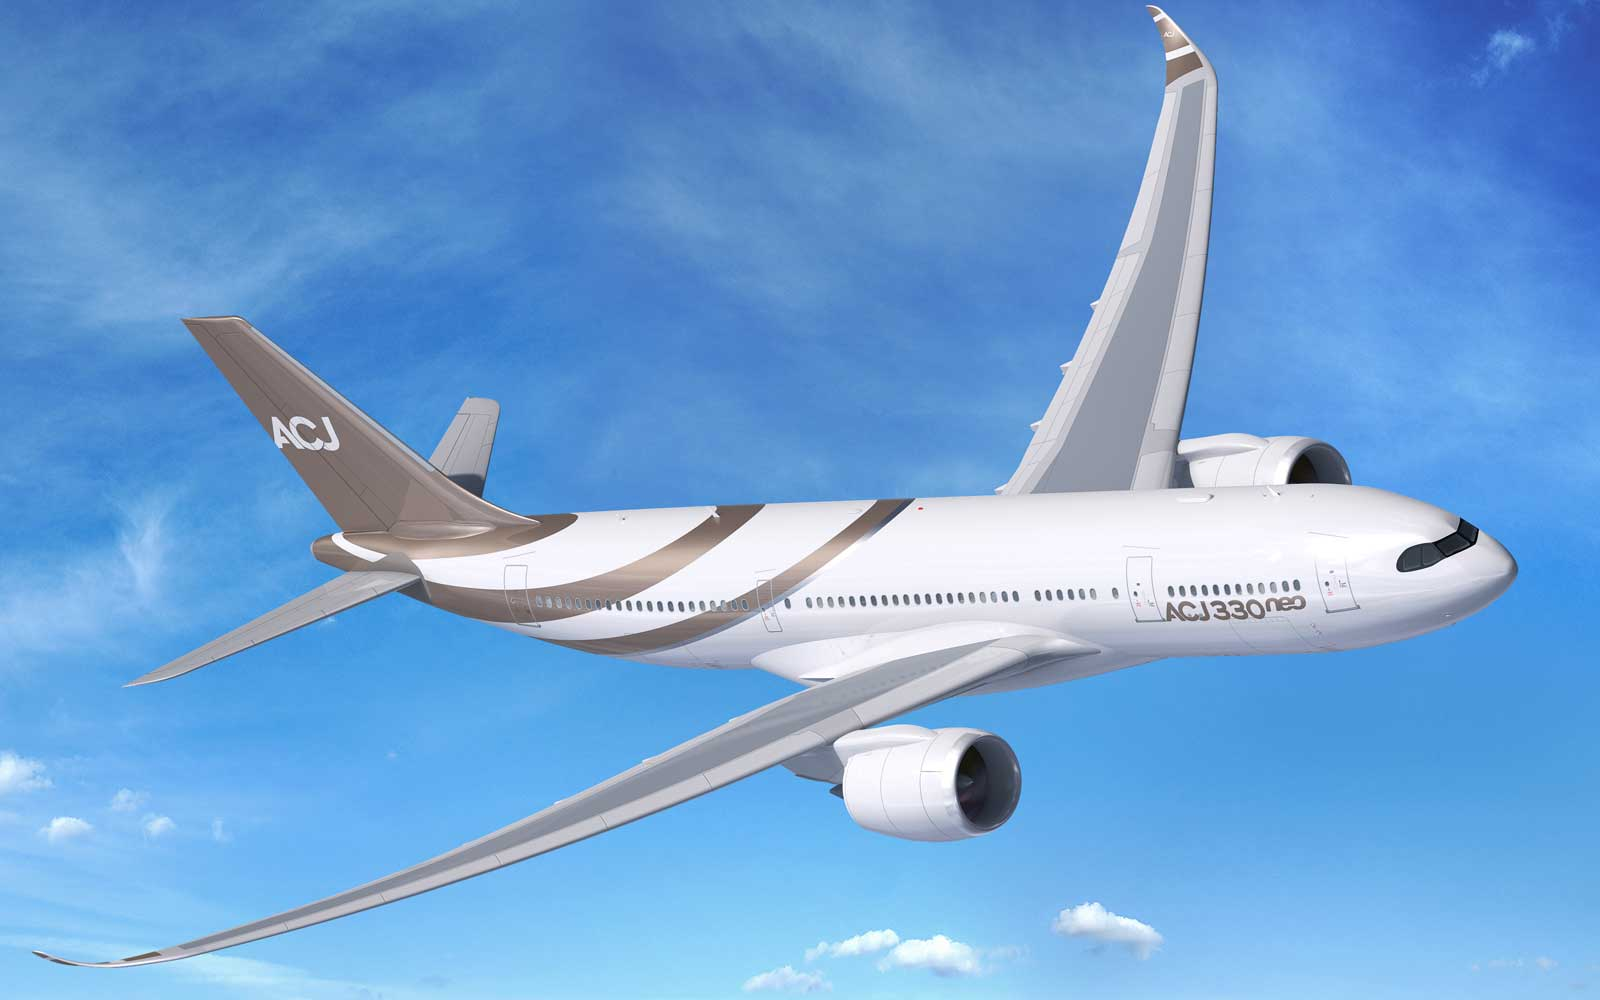 This new Airbus jet is a custom command center in the skies